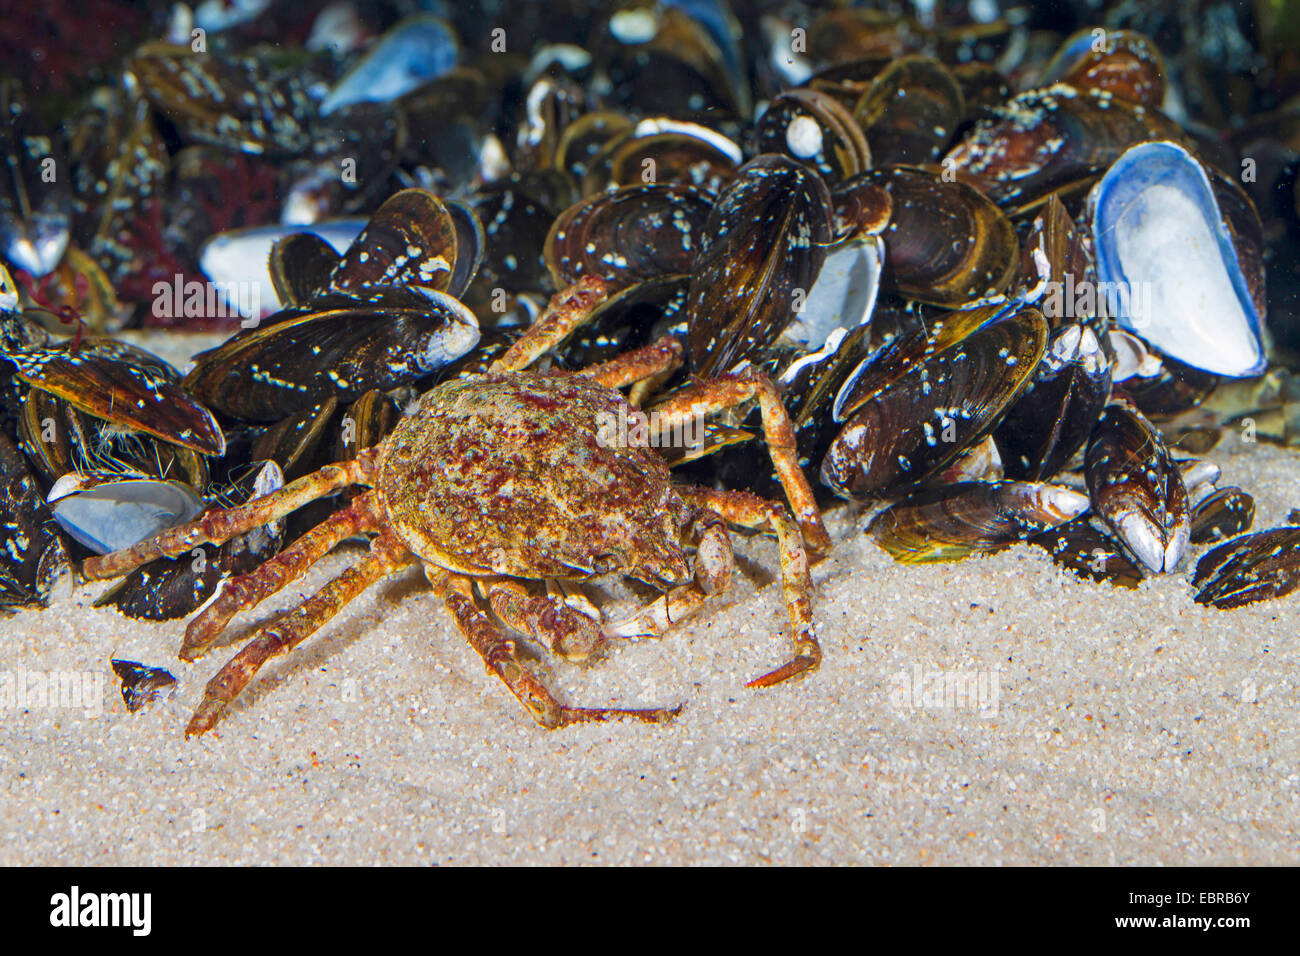 Atlantic lyre crab, great spider crab, toad crab (Hyas araneus), with mussels - Stock Image